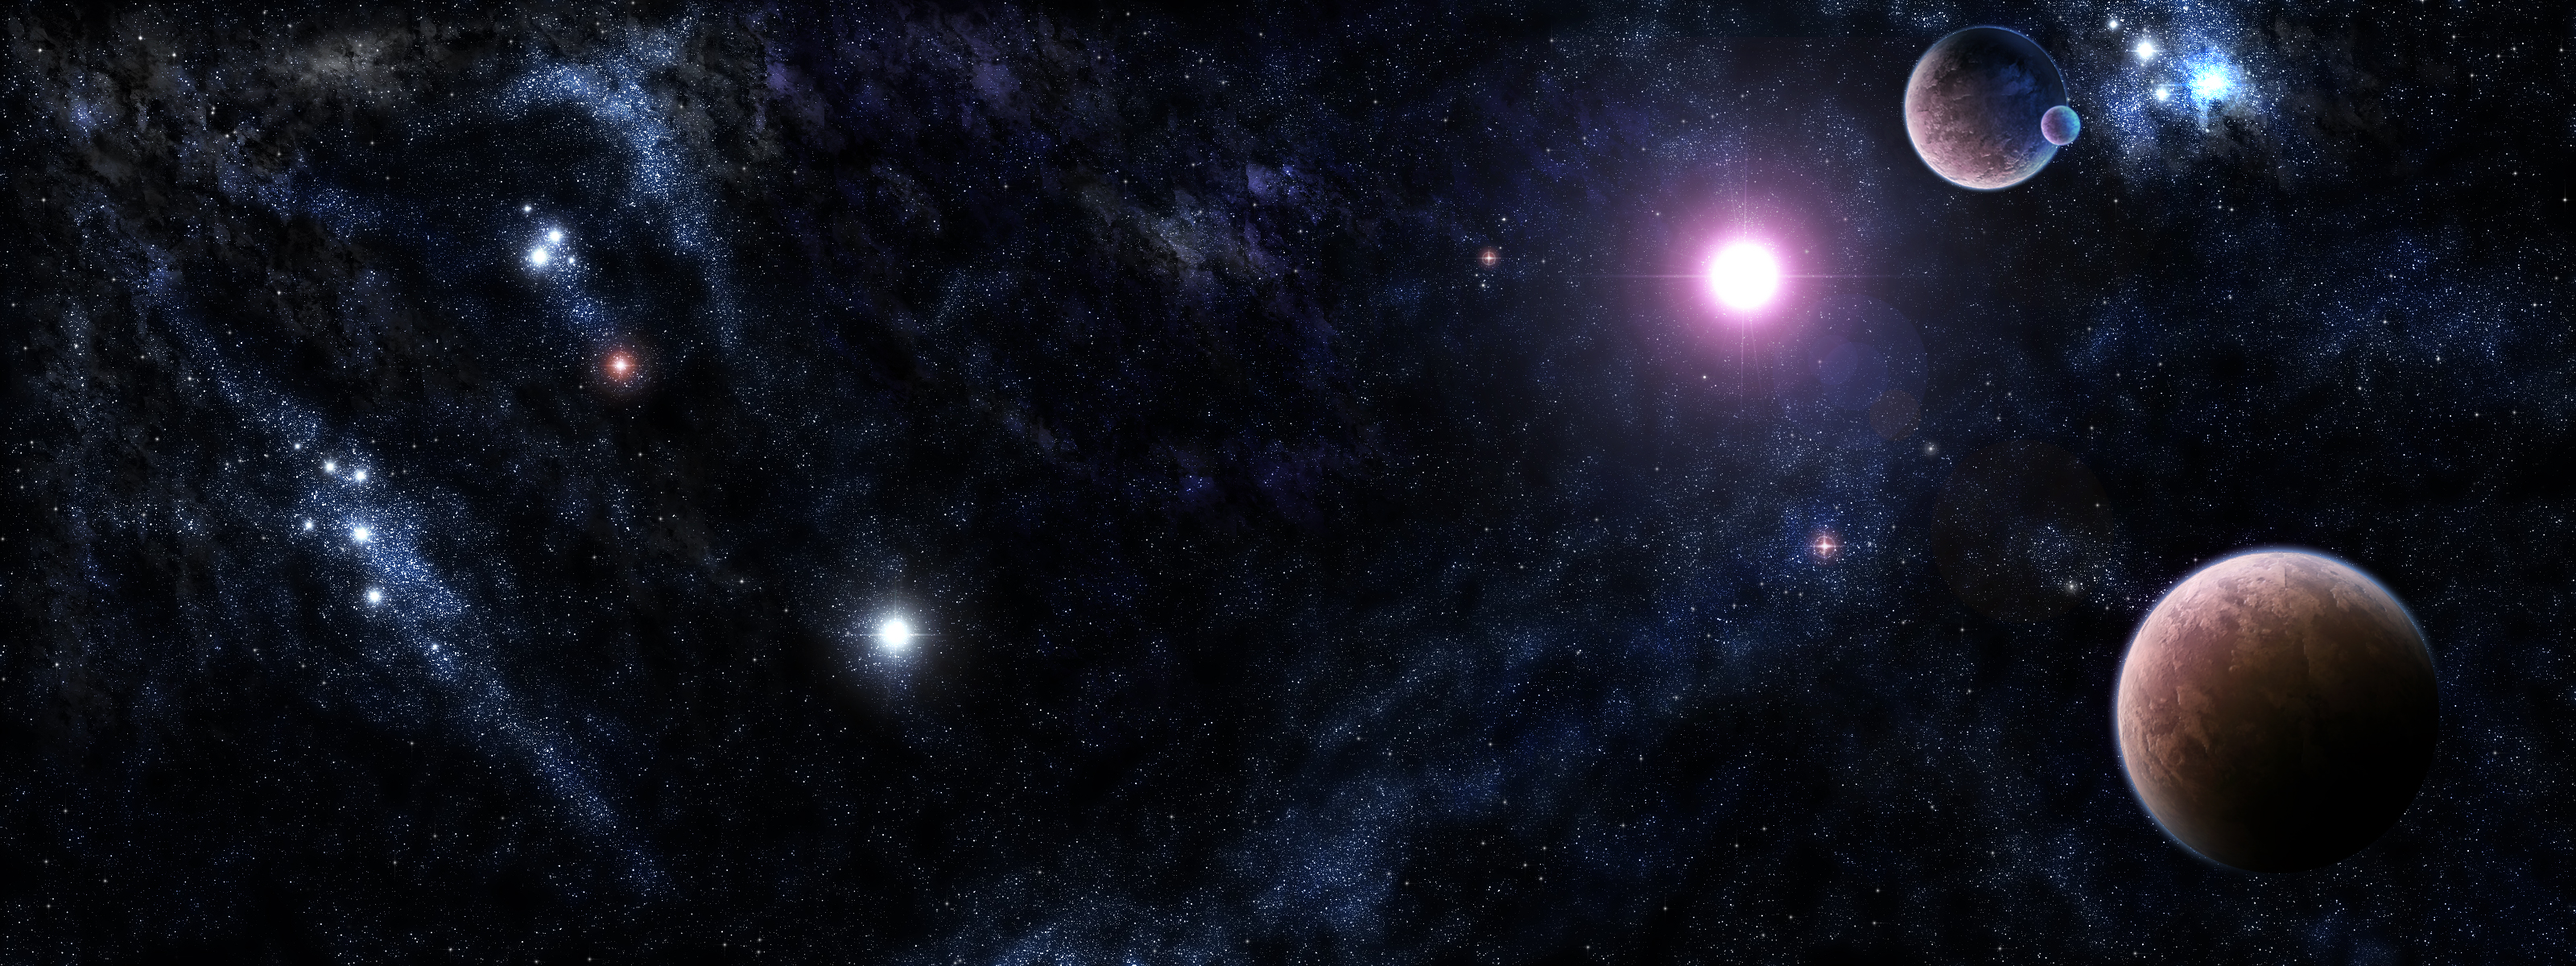 Multi Monitor dual screen sci fi planets stars nebula wallpaper 3200x1200